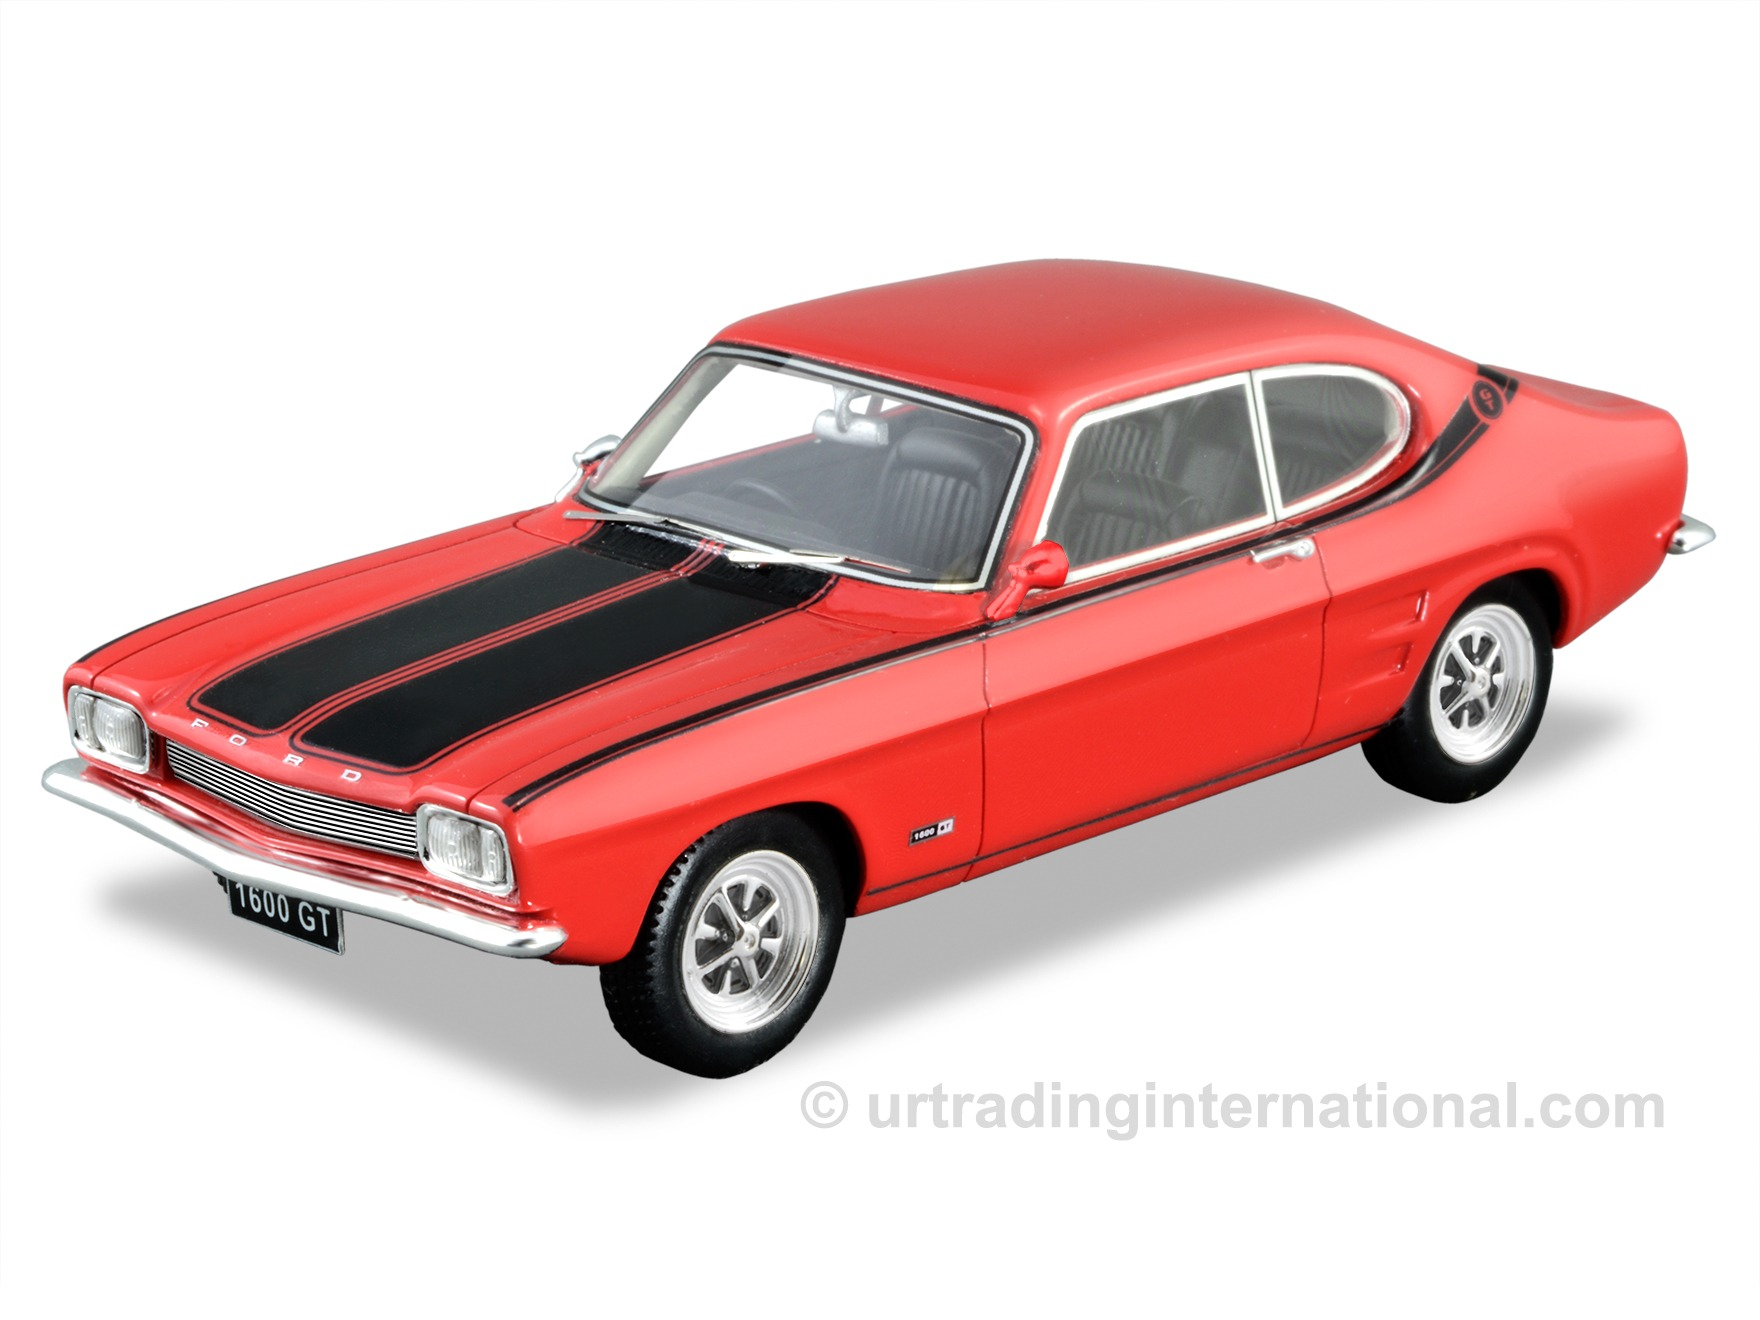 1969 Ford Capri 1600 GT – Vermillion Fire / Black Stripe